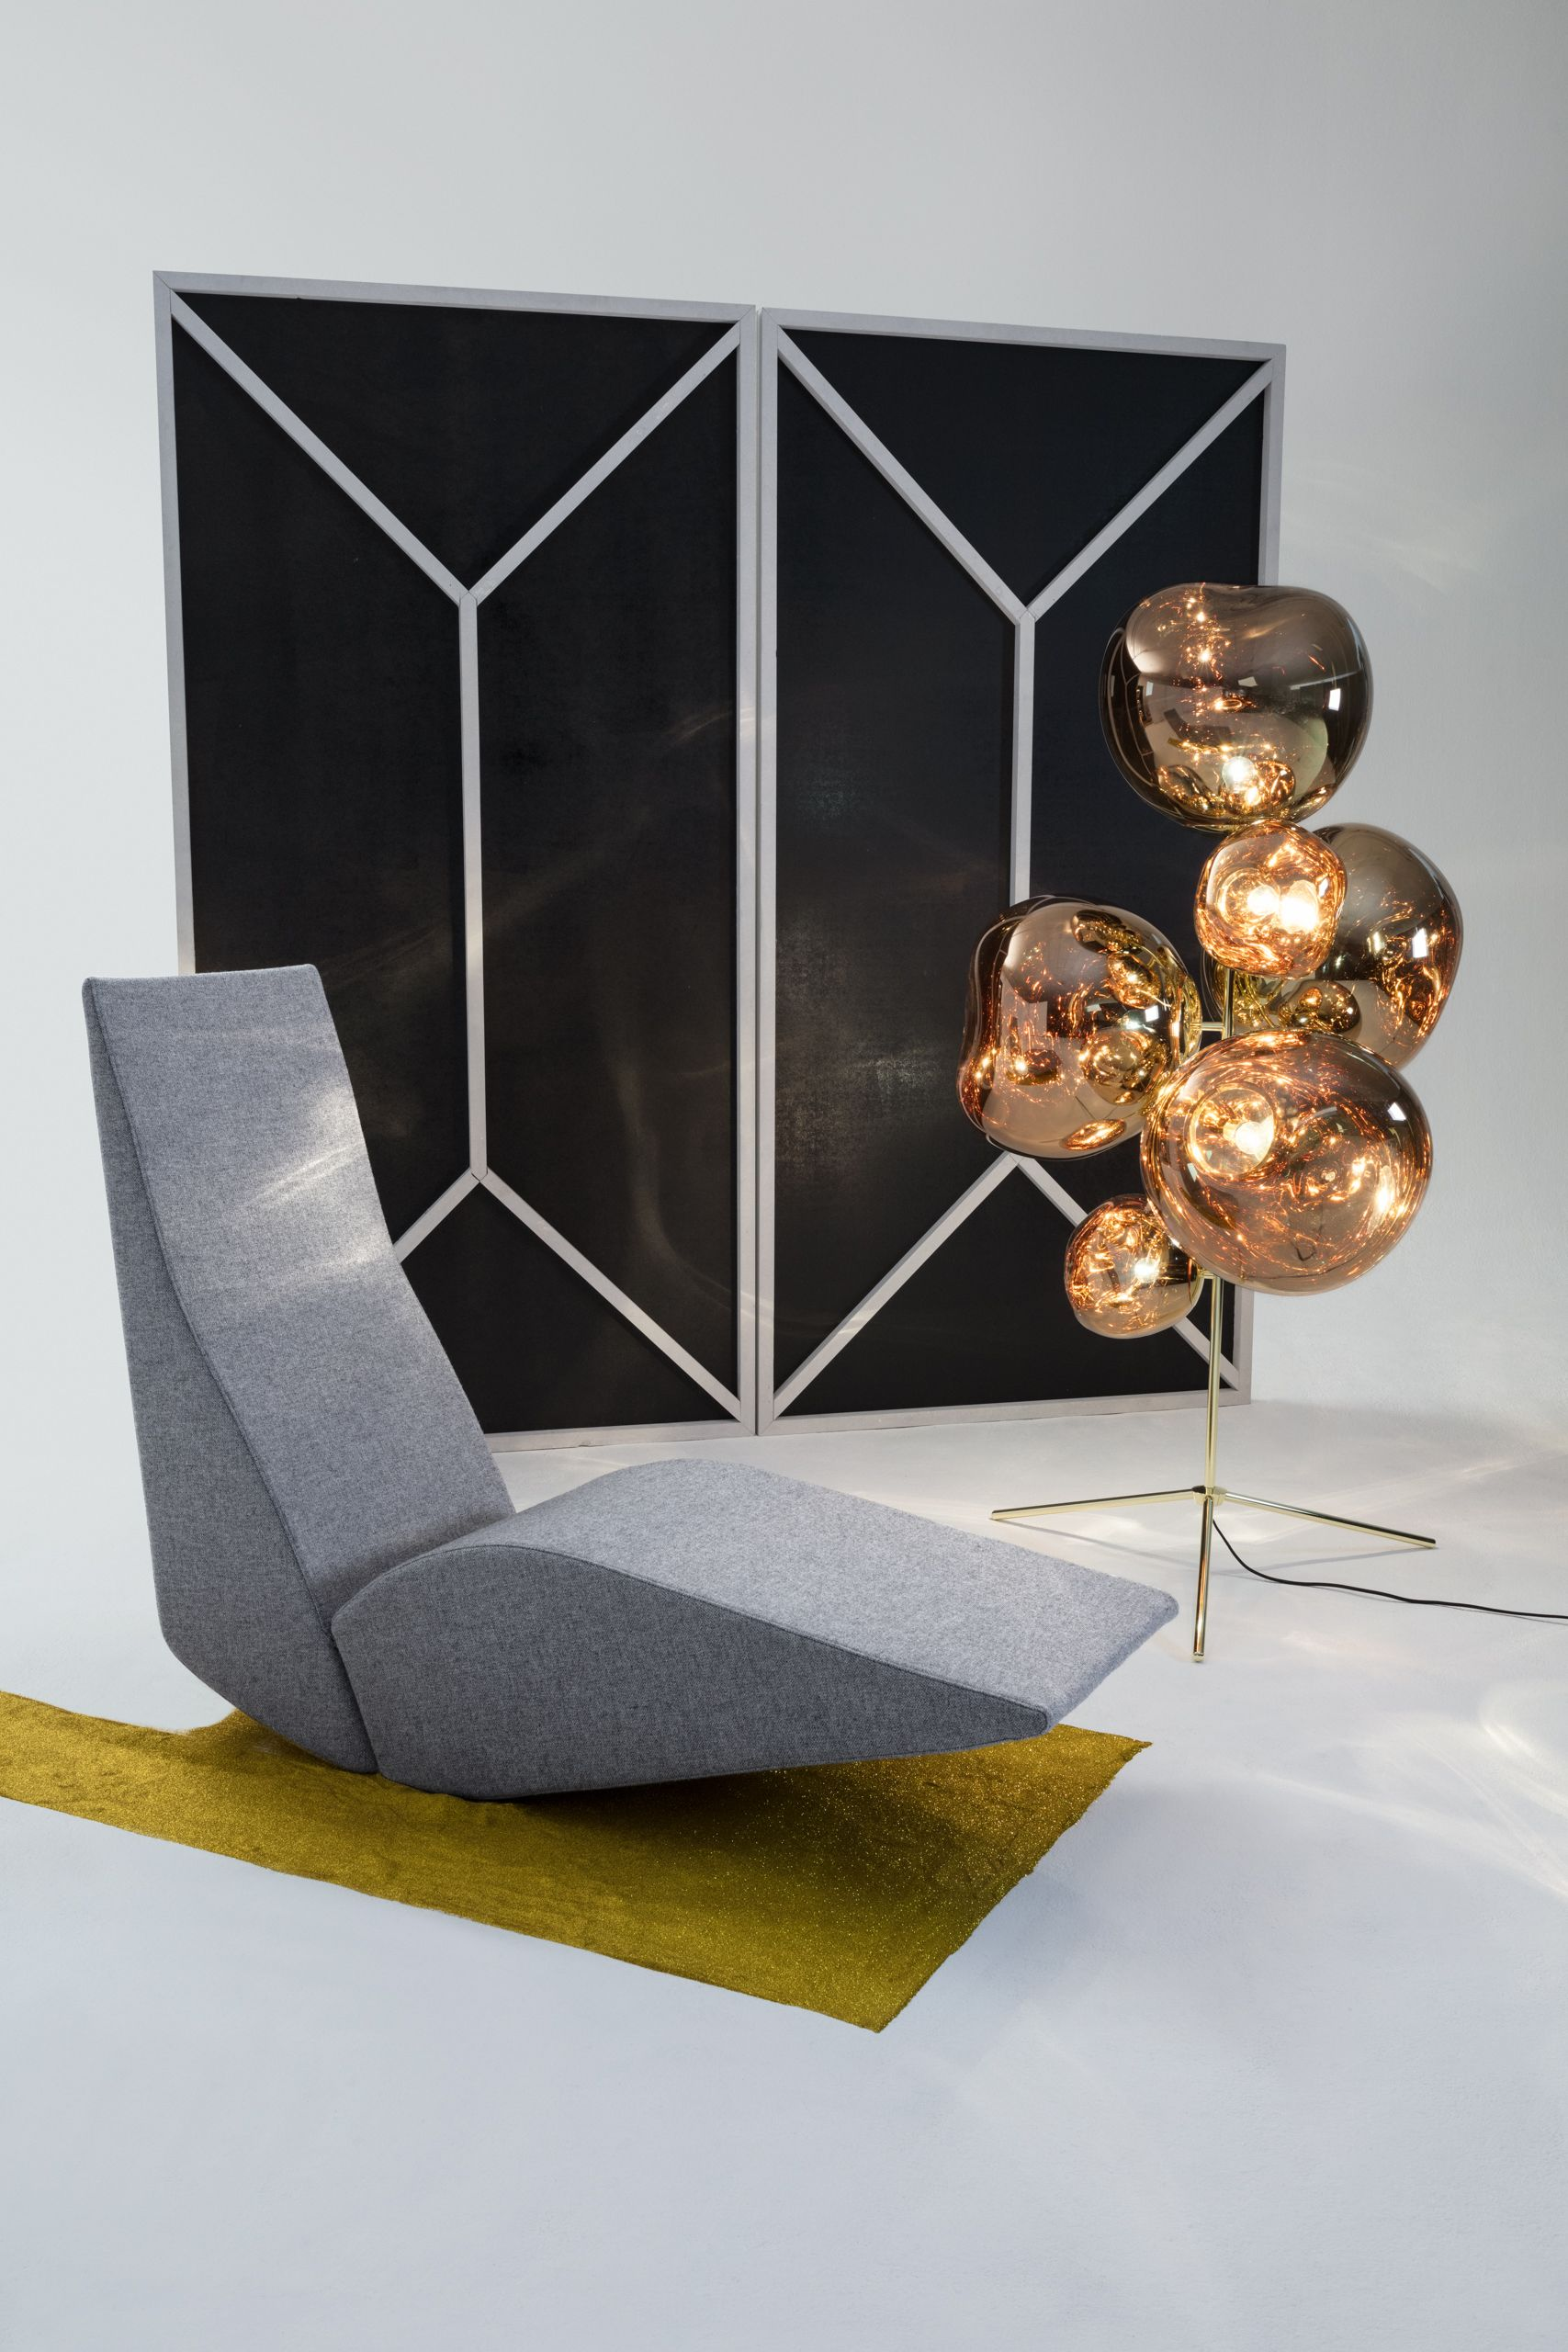 Bird Chaise With Melt Standing Chandelier 15 Off All Tom Dixon Lighting Furniture And Accessories Now Thru Oc Tom Dixon Chandelier Floor Lamp Tom Dixon Melt